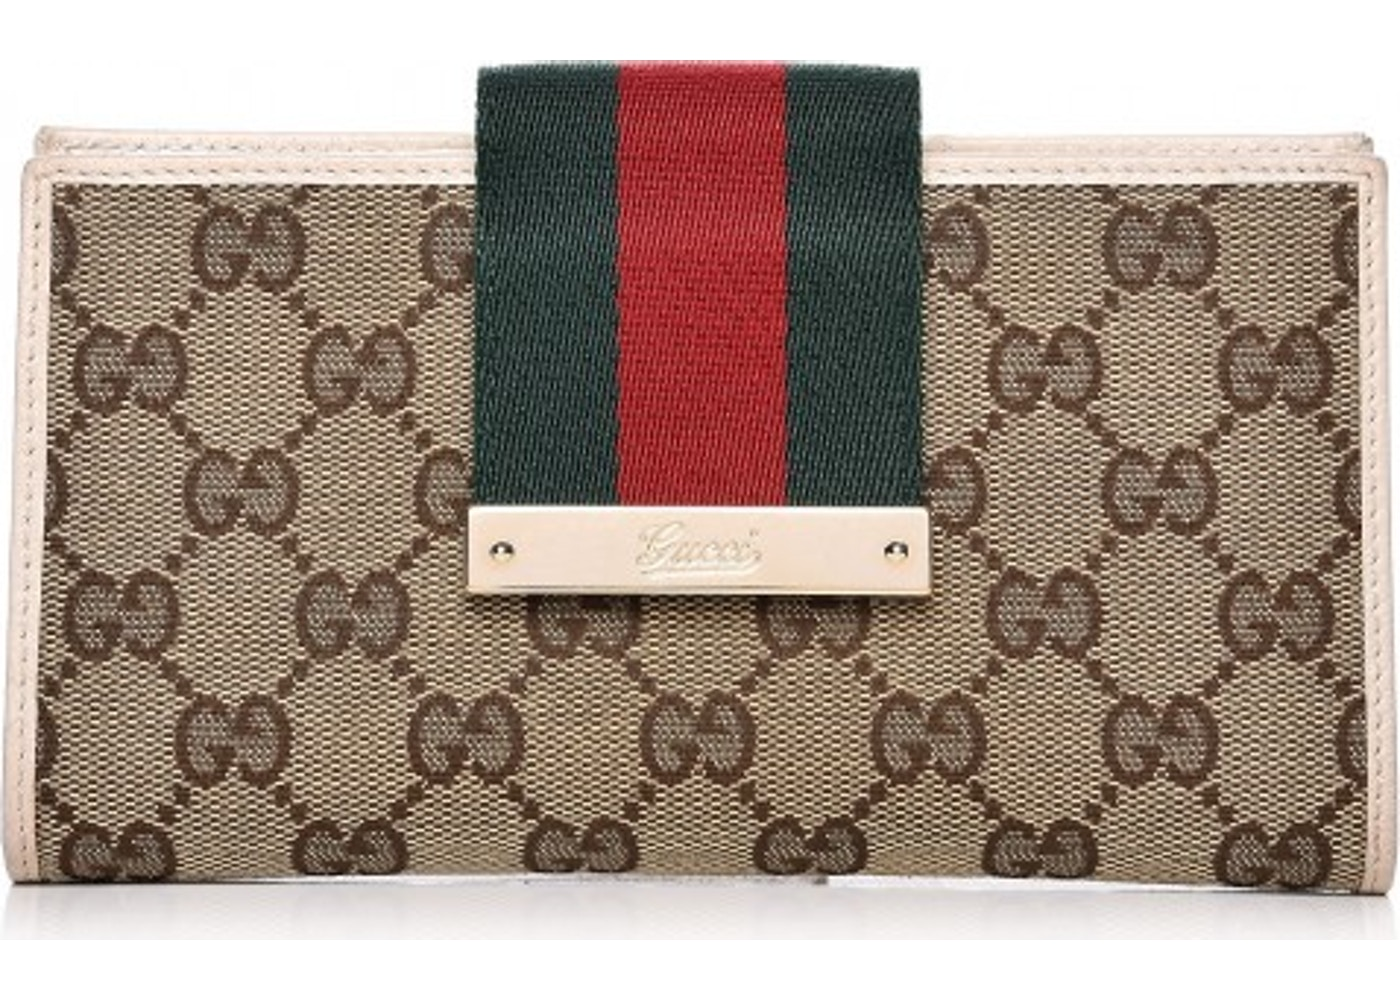 862e02b0616 Gucci Ladies Web Continental Wallet Monogram GG Brown Beige Green Red.  Monogram GG Brown Beige Green Red